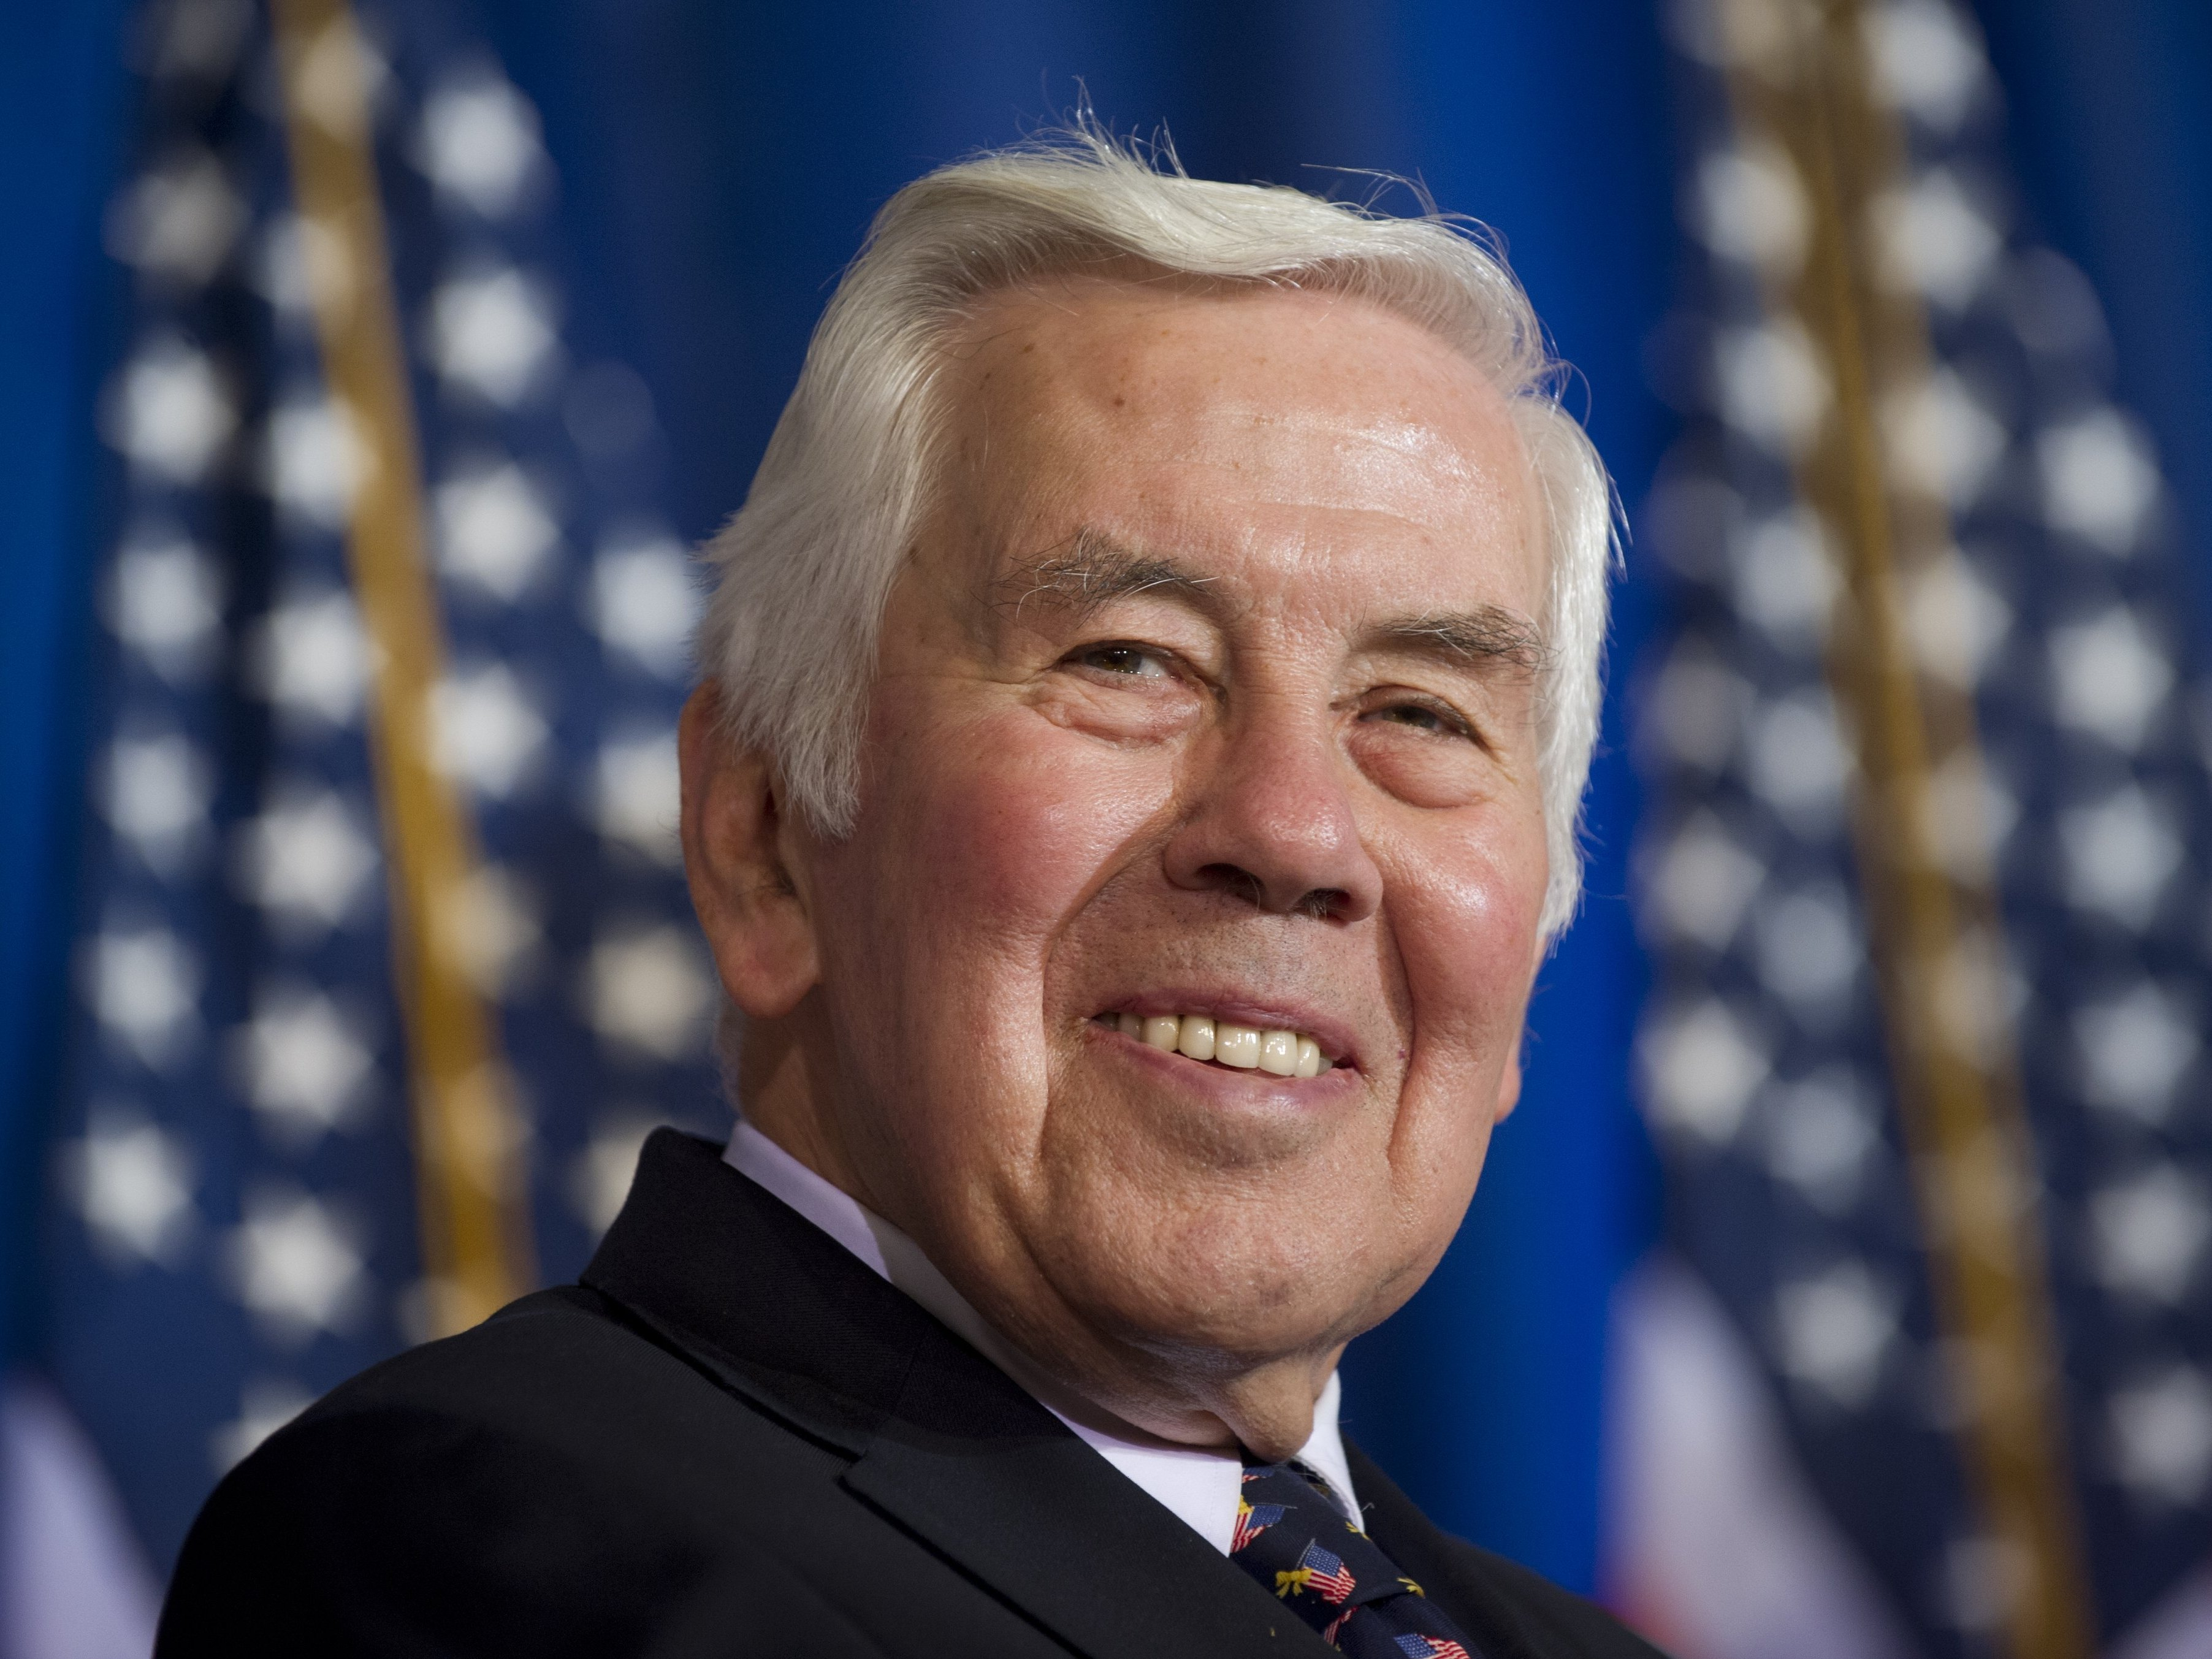 Sen. Richard Lugar, R-Ind., last month in Washington.